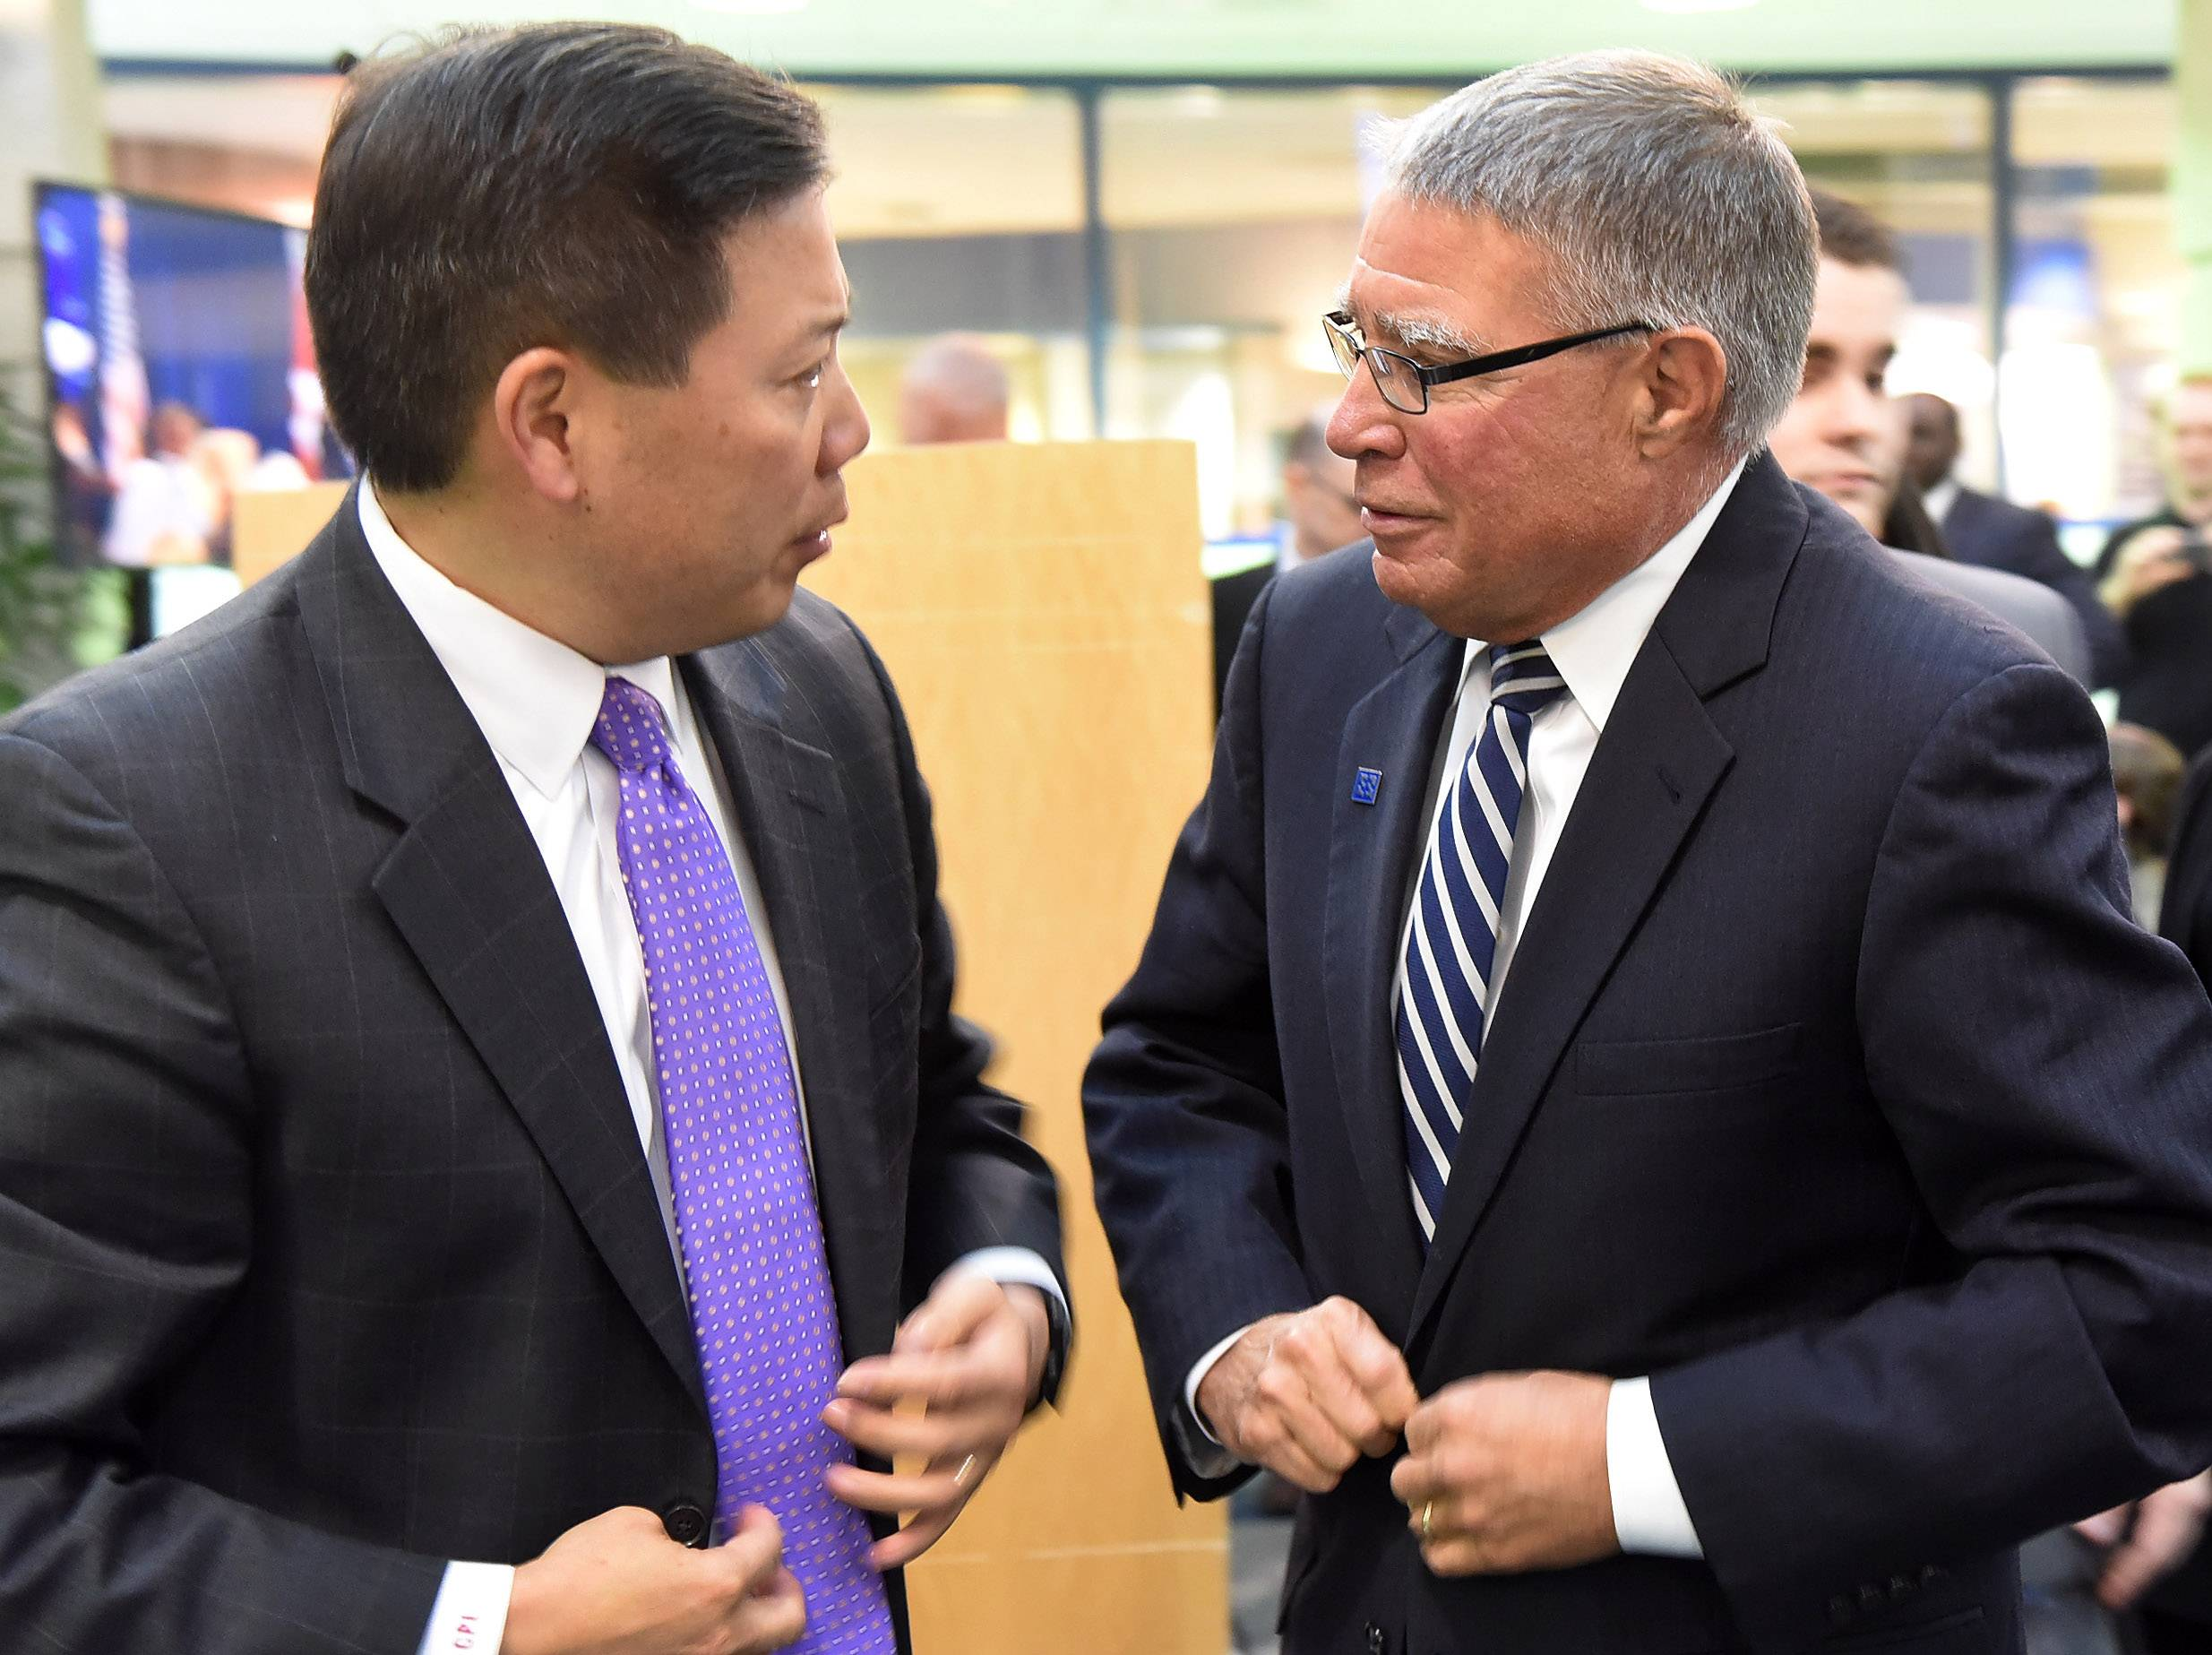 U.S. Deputy Secretary of Labor Chris Lu and Harper College President Kenneth Ender talk Tuesday after an event to launch a first-of-its-kind apprenticeship program between the Palatine school and Schaumburg-based Zurich North America.